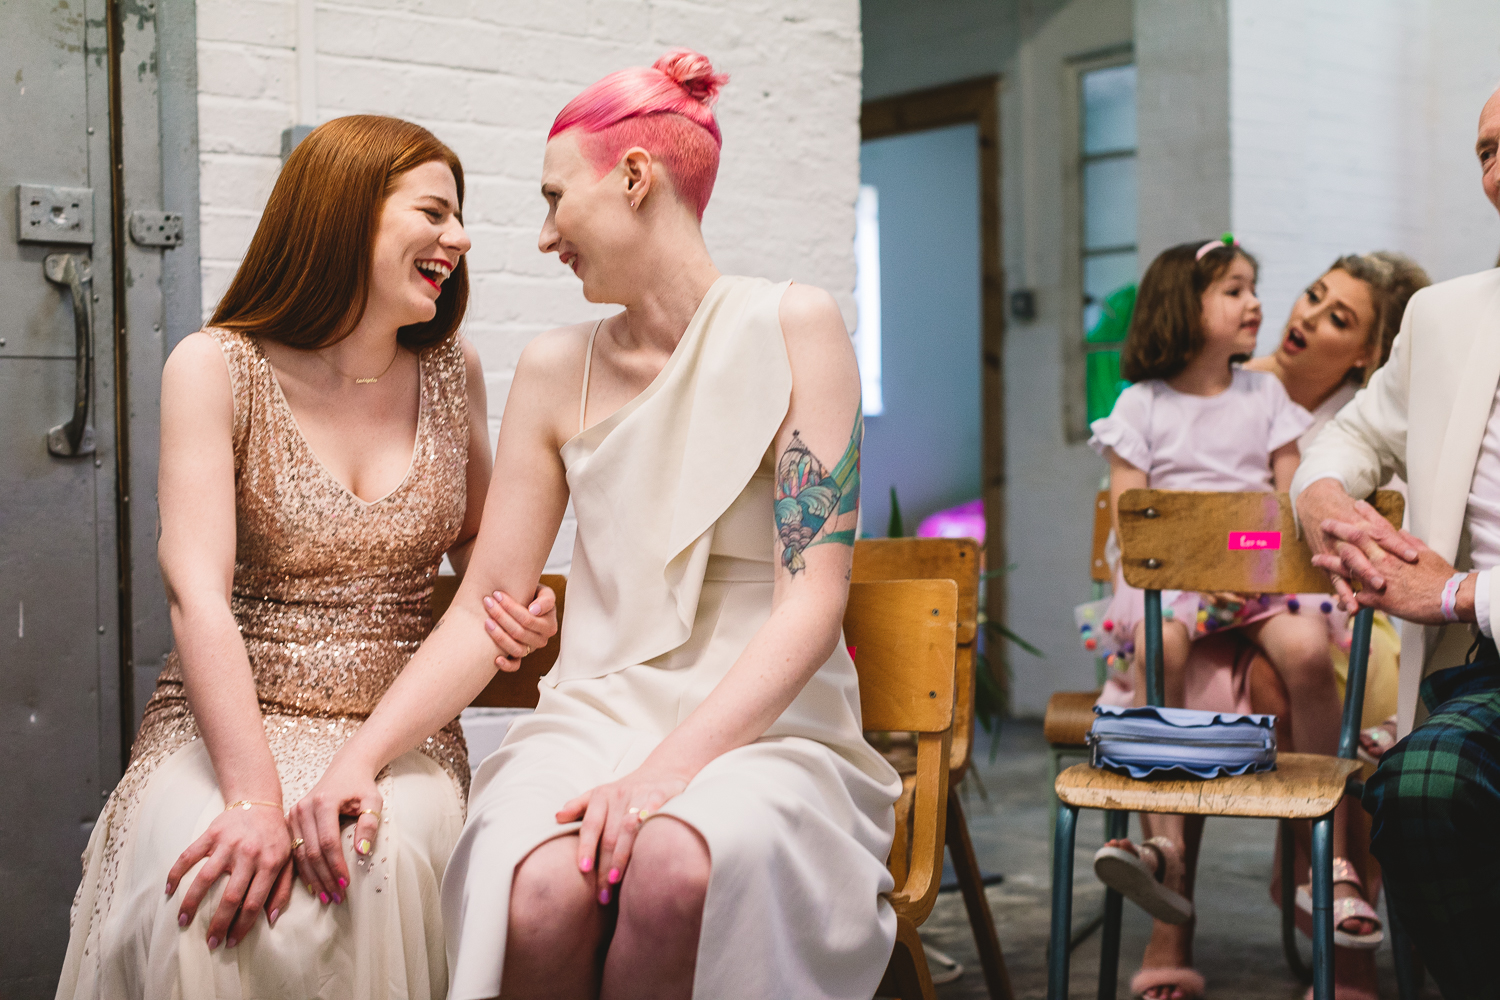 Two brides, one with tattoos and pink hair, the other wearing gold dress, smiling and laughing sat down arm in arm during their fun hackney wedding ceremony